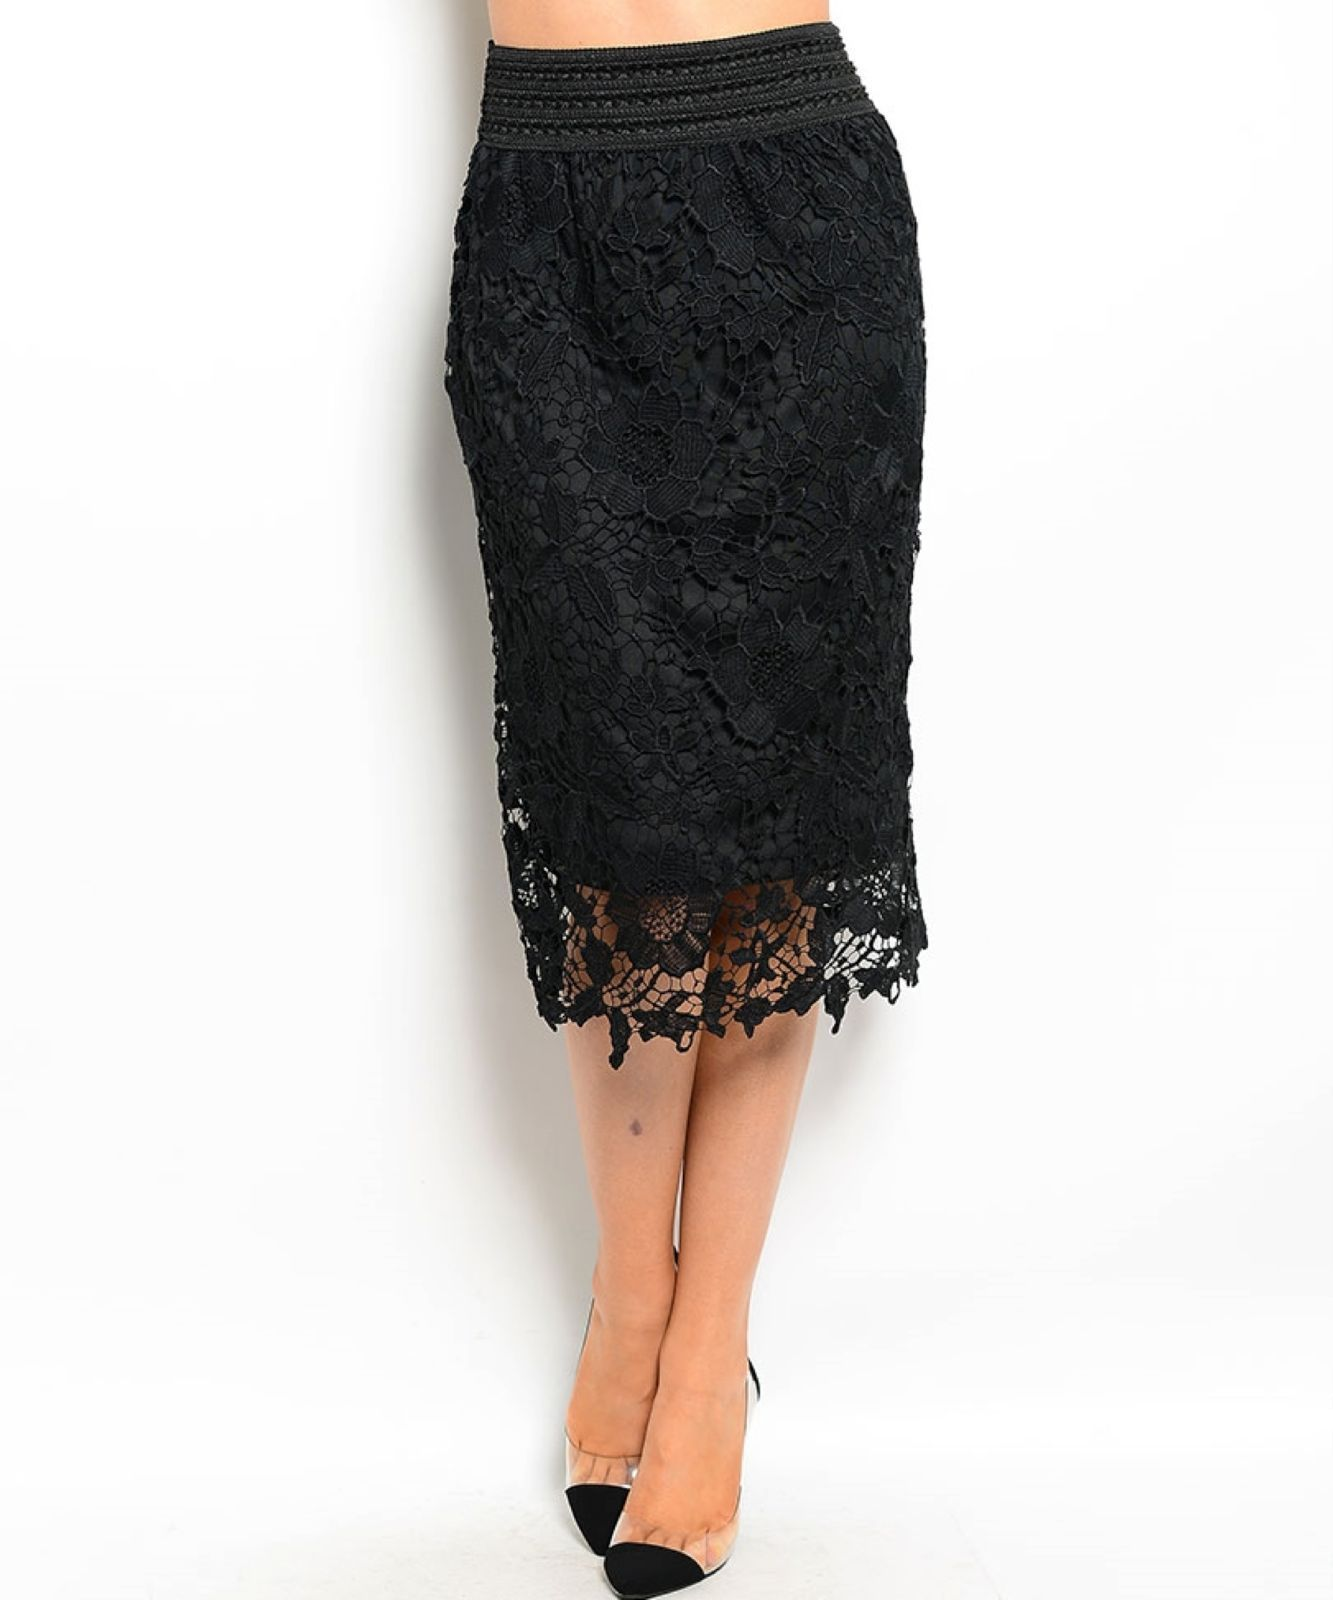 Image 0 of Chic Crochet Lace Lined Jr Skirt, Cocktail Club Party, Black, Ivory or White - B